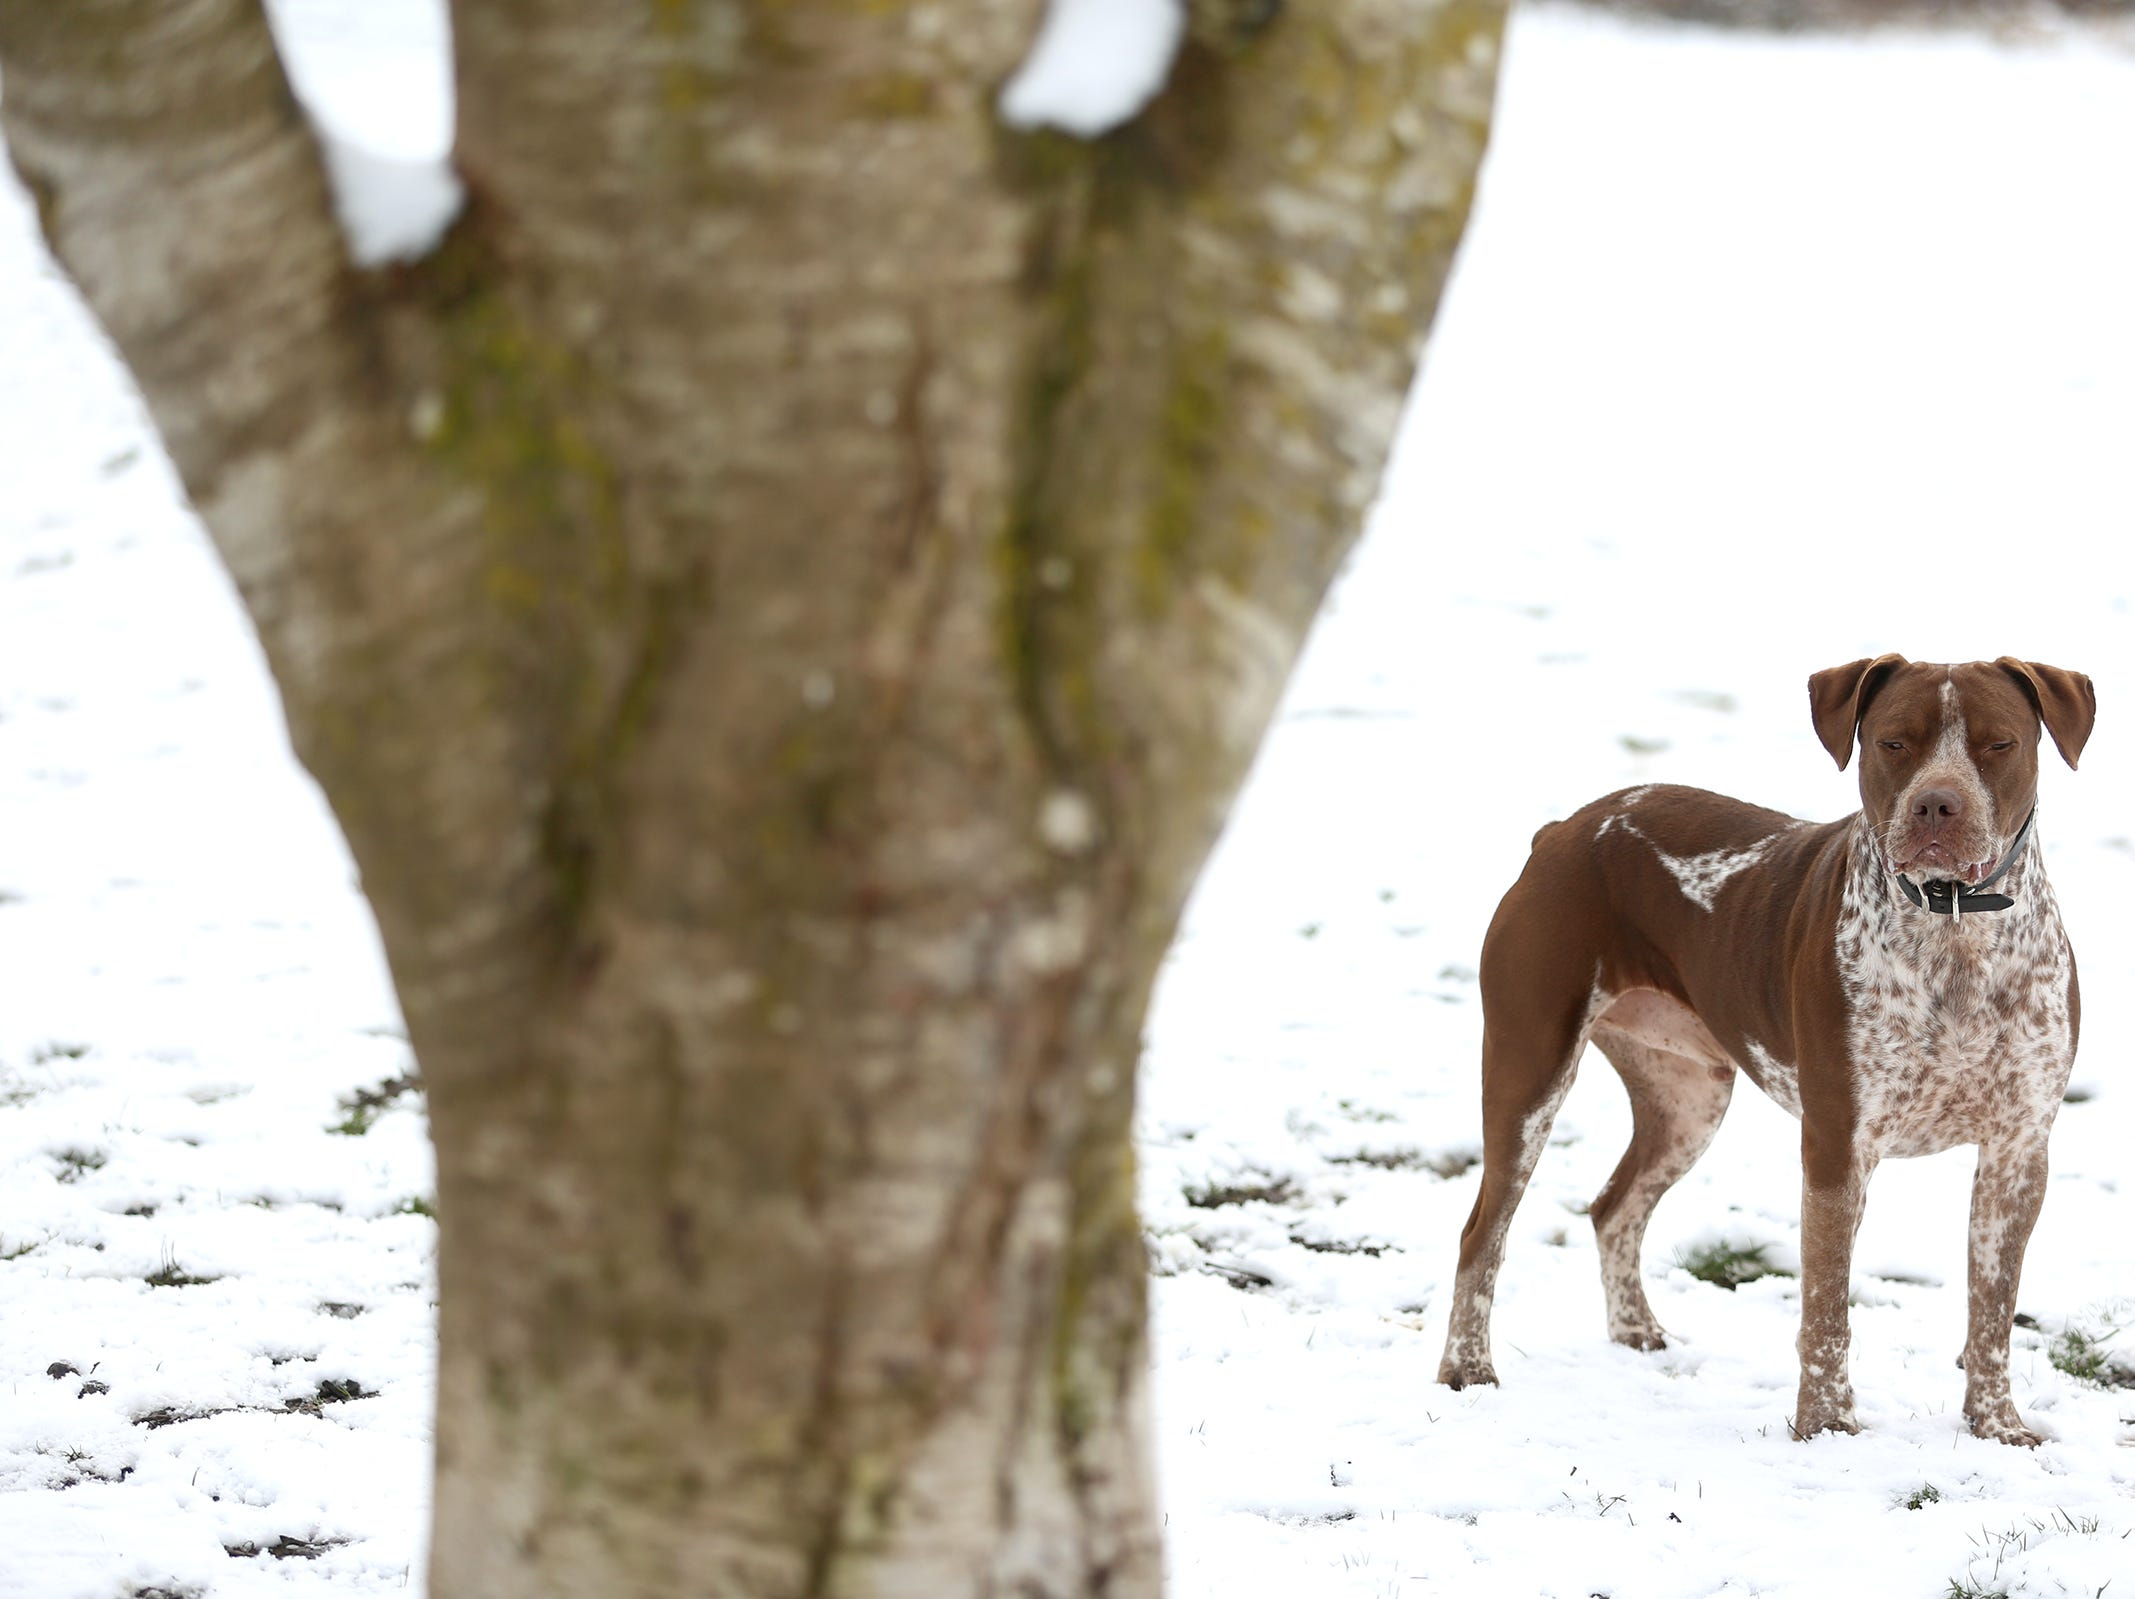 Buddy plays in the snow at Minto-Brown Island Park in Salem on Wednesday, Feb. 27, 2019.